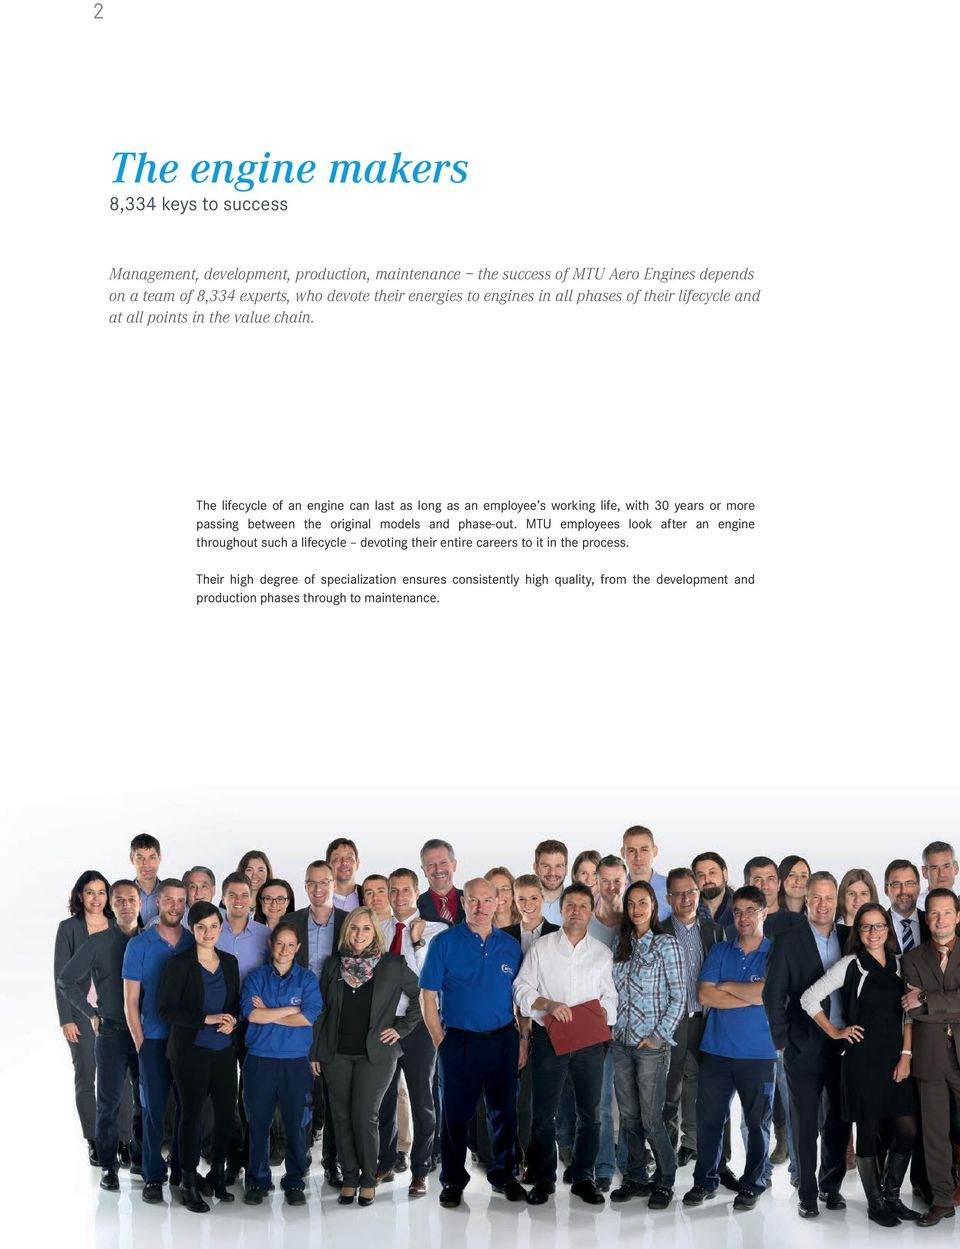 The lifecycle of an engine can last as long as an employee s working life, with 30 years or more passing between the original models and phase-out.